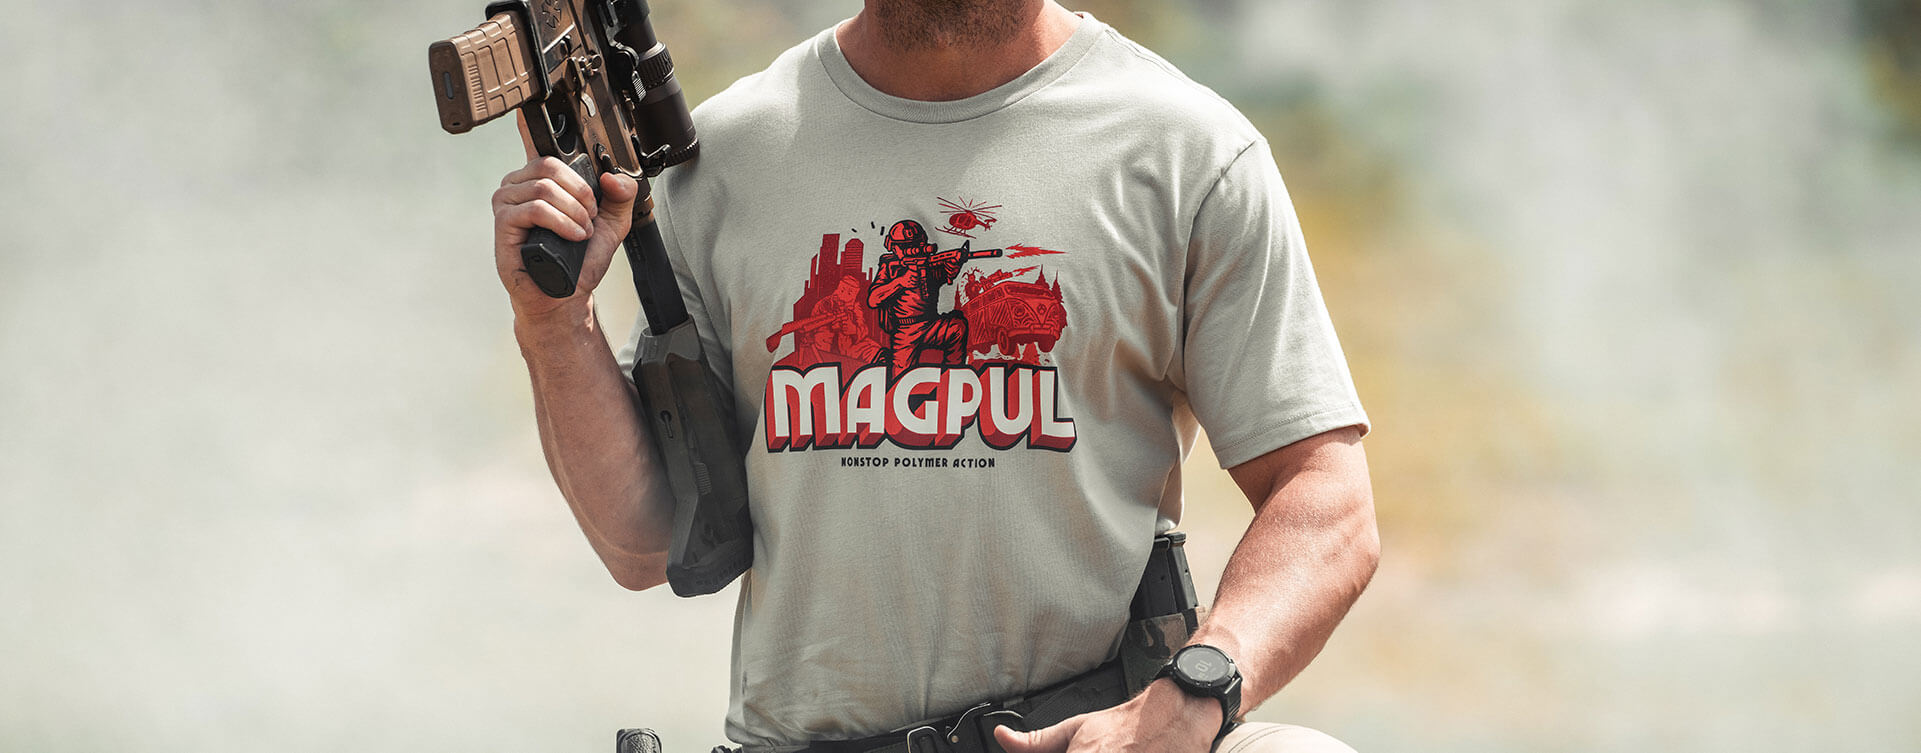 Magpul Nonstop Polymer Action Cotton T-Shirt on man outdoors holding scoped AR and wearing a battle belt